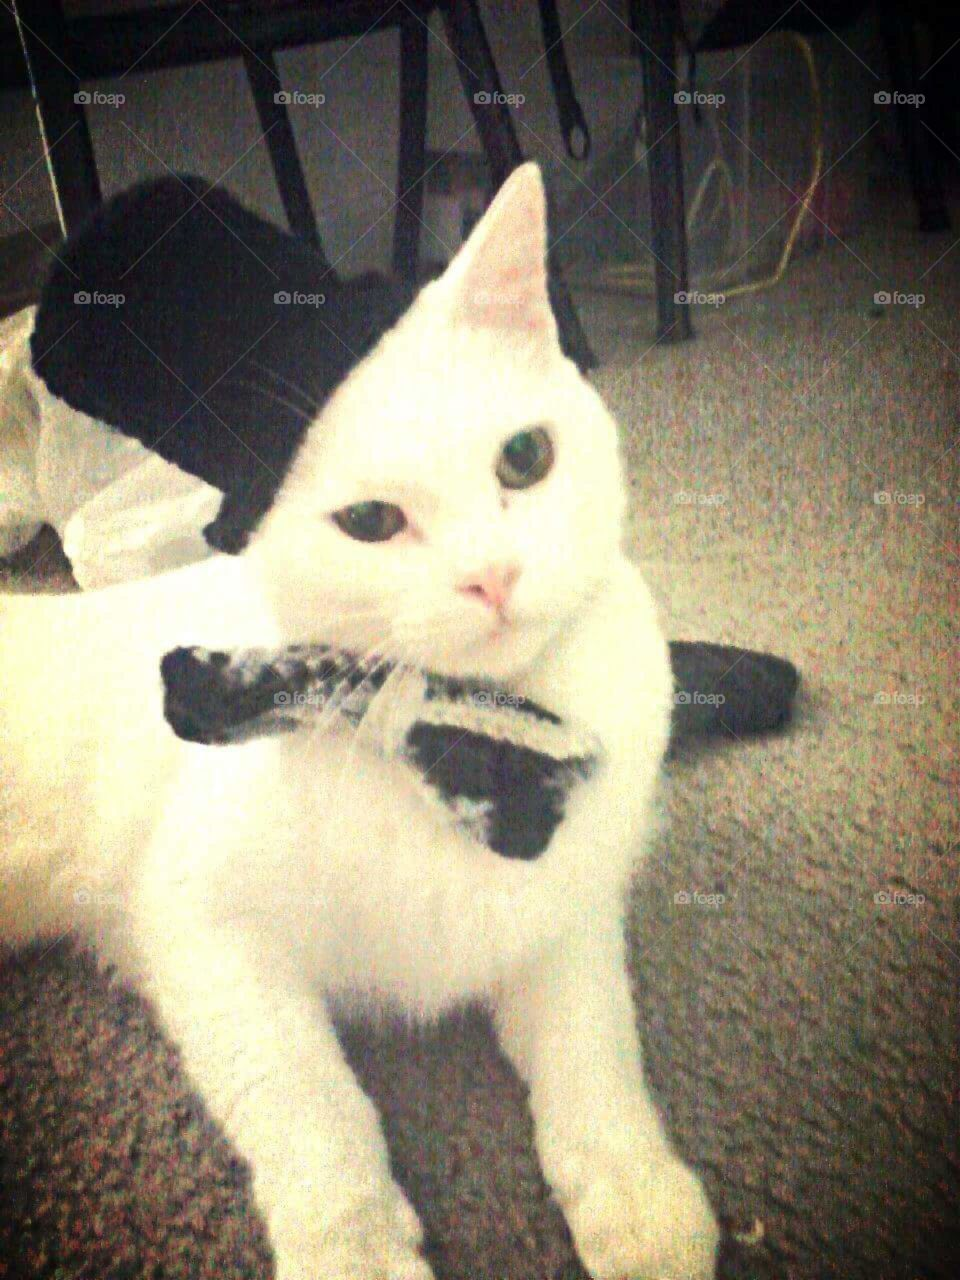 Korin in his tophat and bowtie